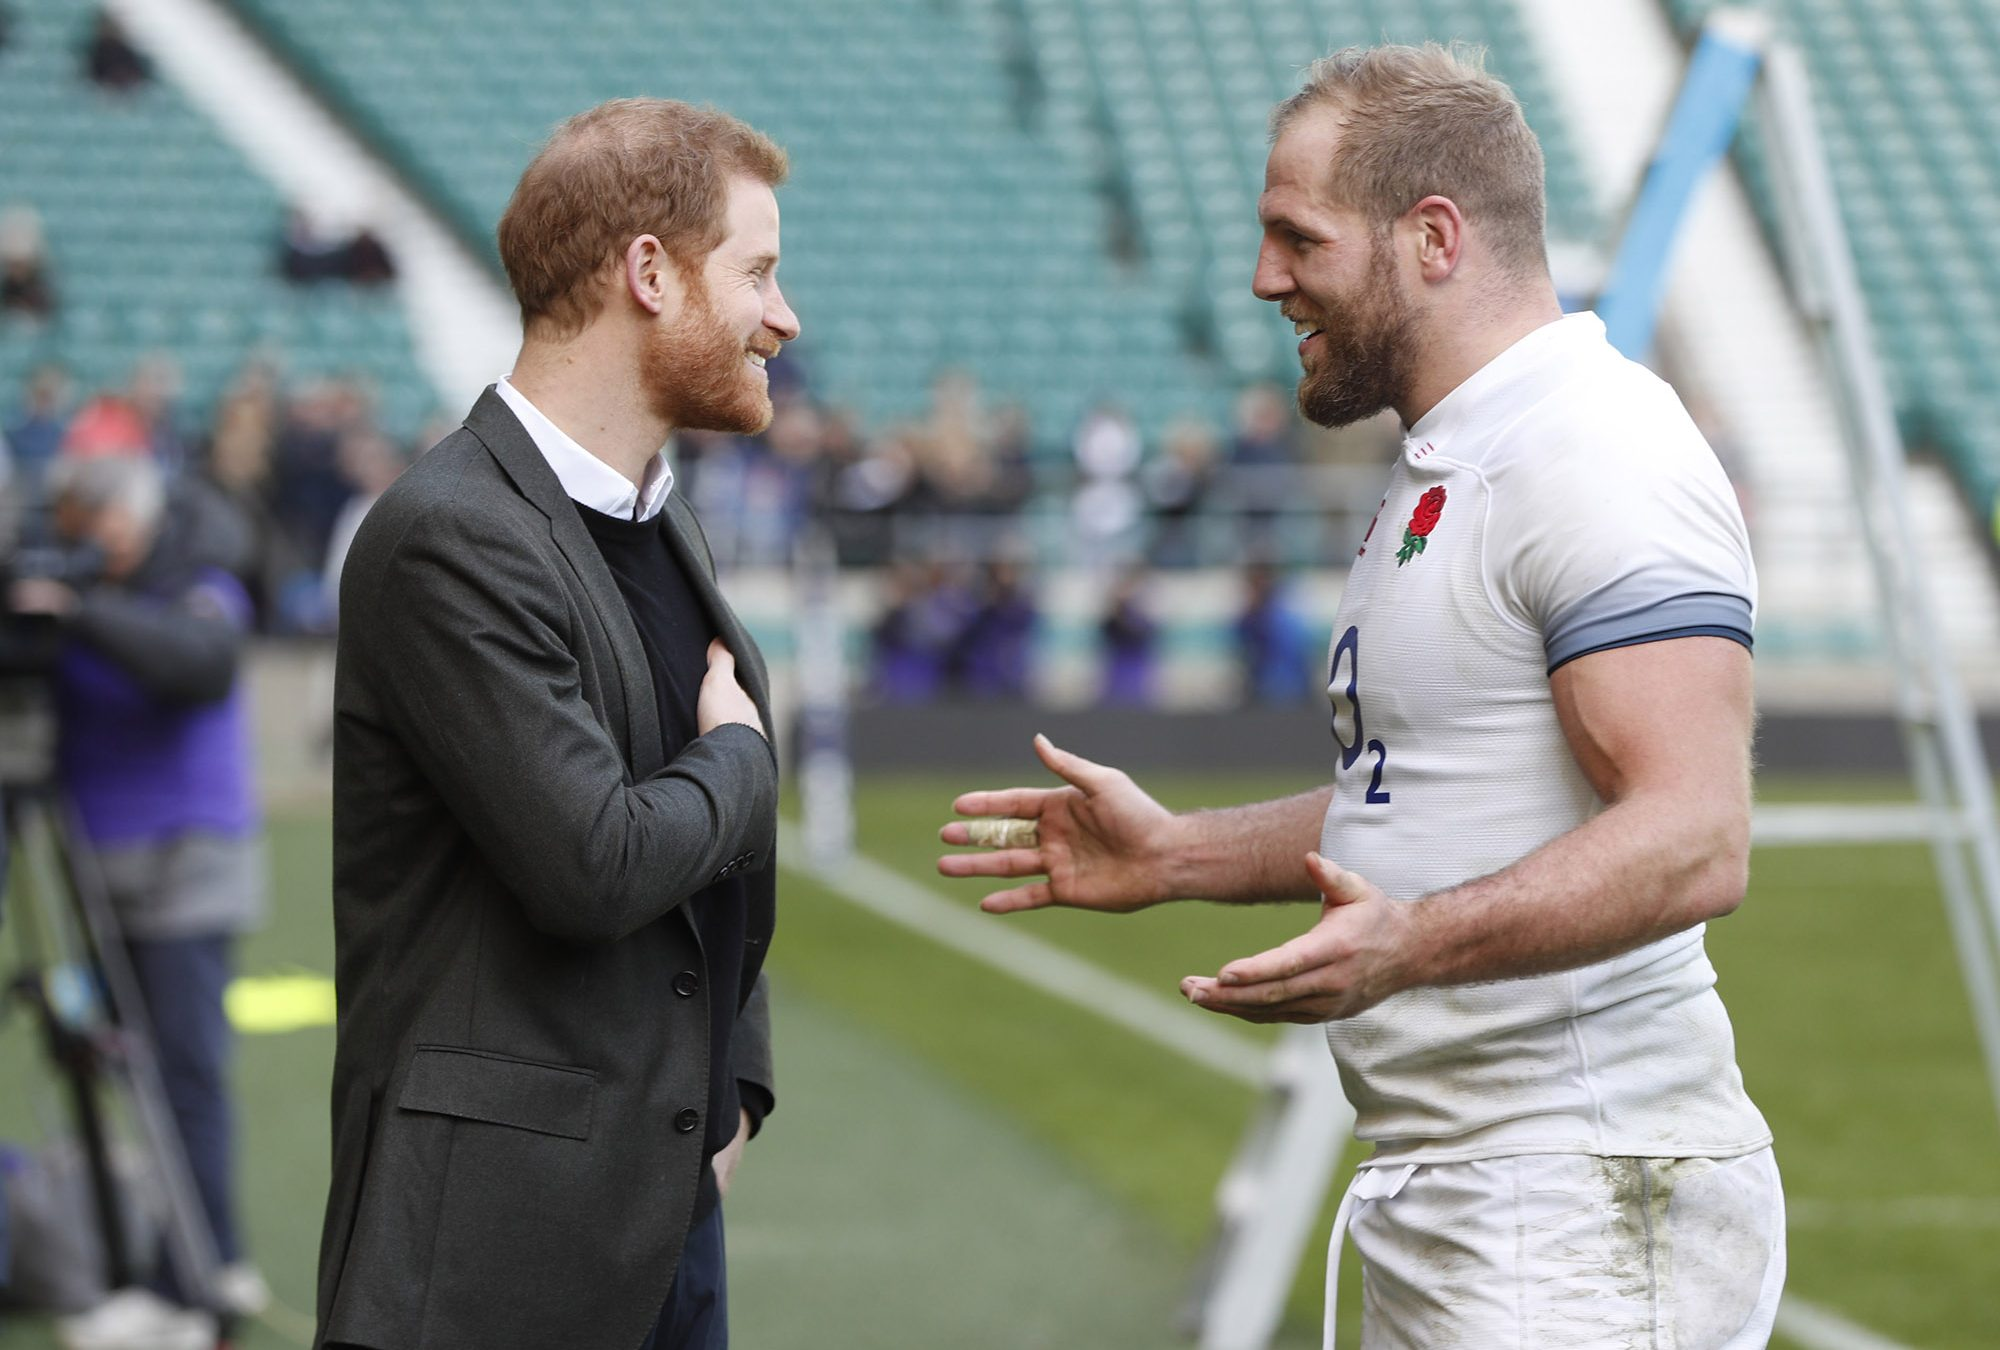 LONDON, UNITED KINGDOM – FEBRUARY 16: Prince Harry speaks to Engand rugby player James Haskell as he attends attends the England rugby team's open training session as they prepare for their next Natwest 6 Nations match, at Twickenham Stadium on February 16, 2018 in London, England. (Photo by Heathcliff O'Malley – WPA Pool/Getty Images)